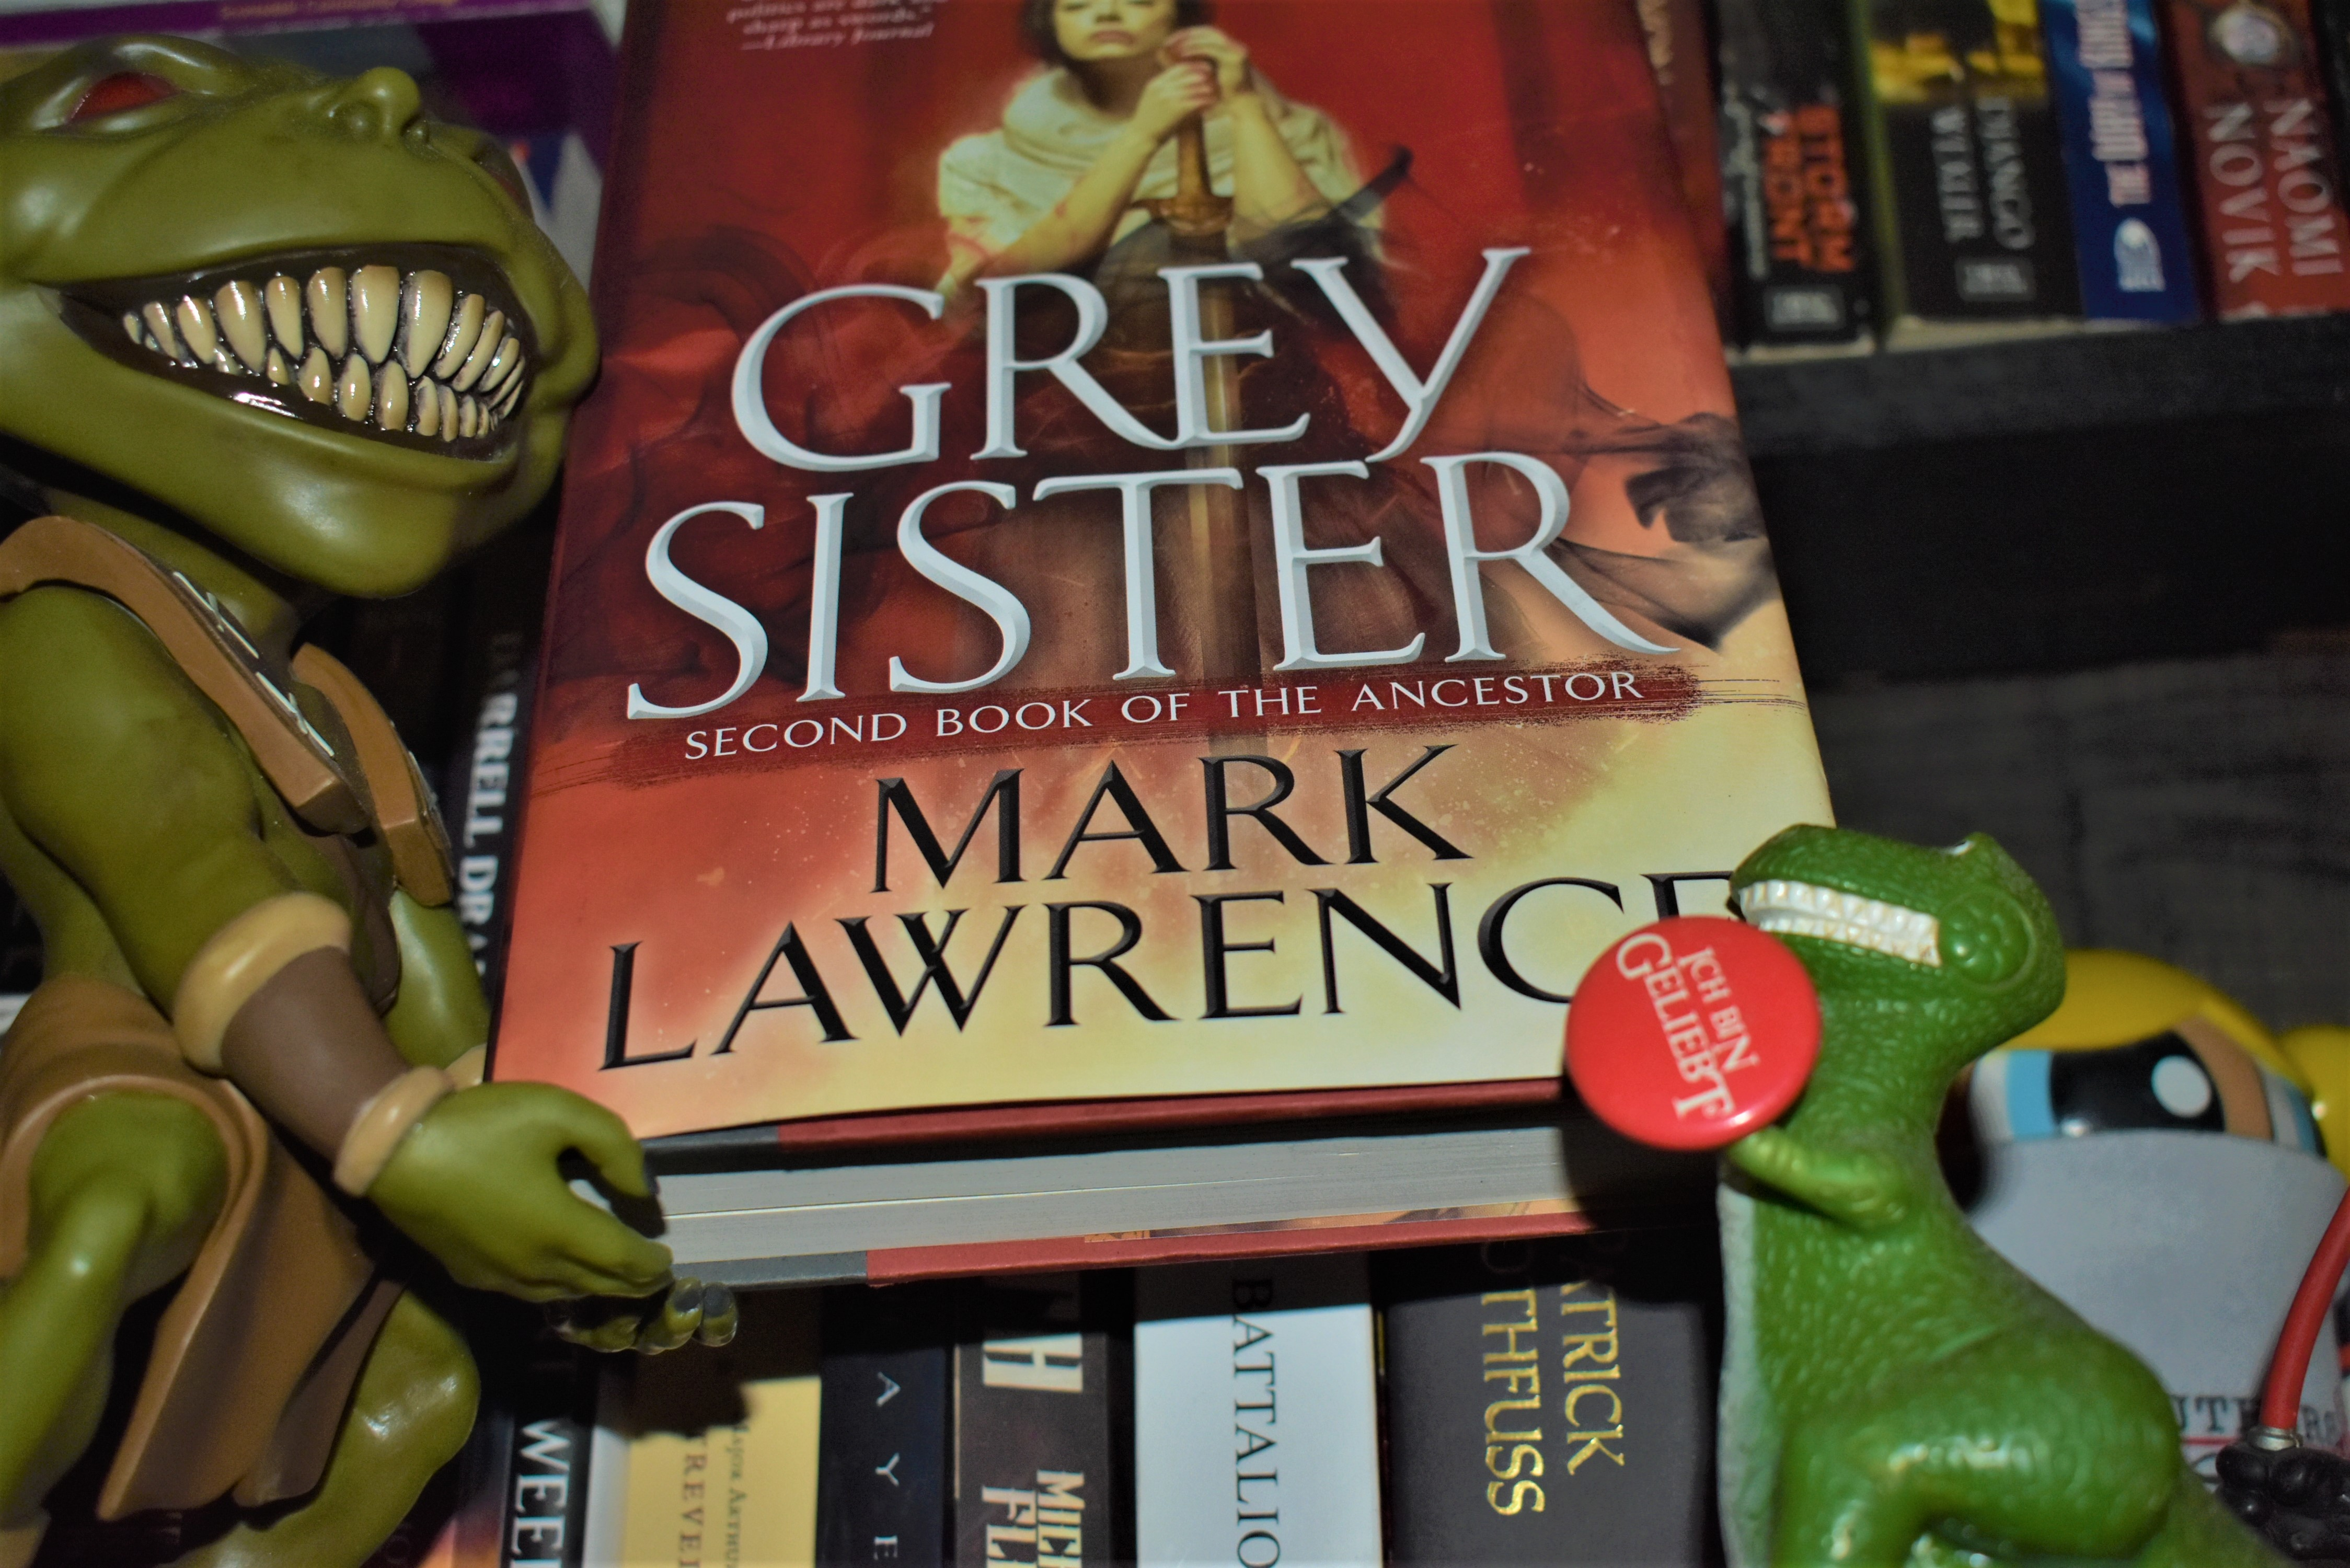 Hob's Review of Grey Sister (Book of the Ancestor #2) by